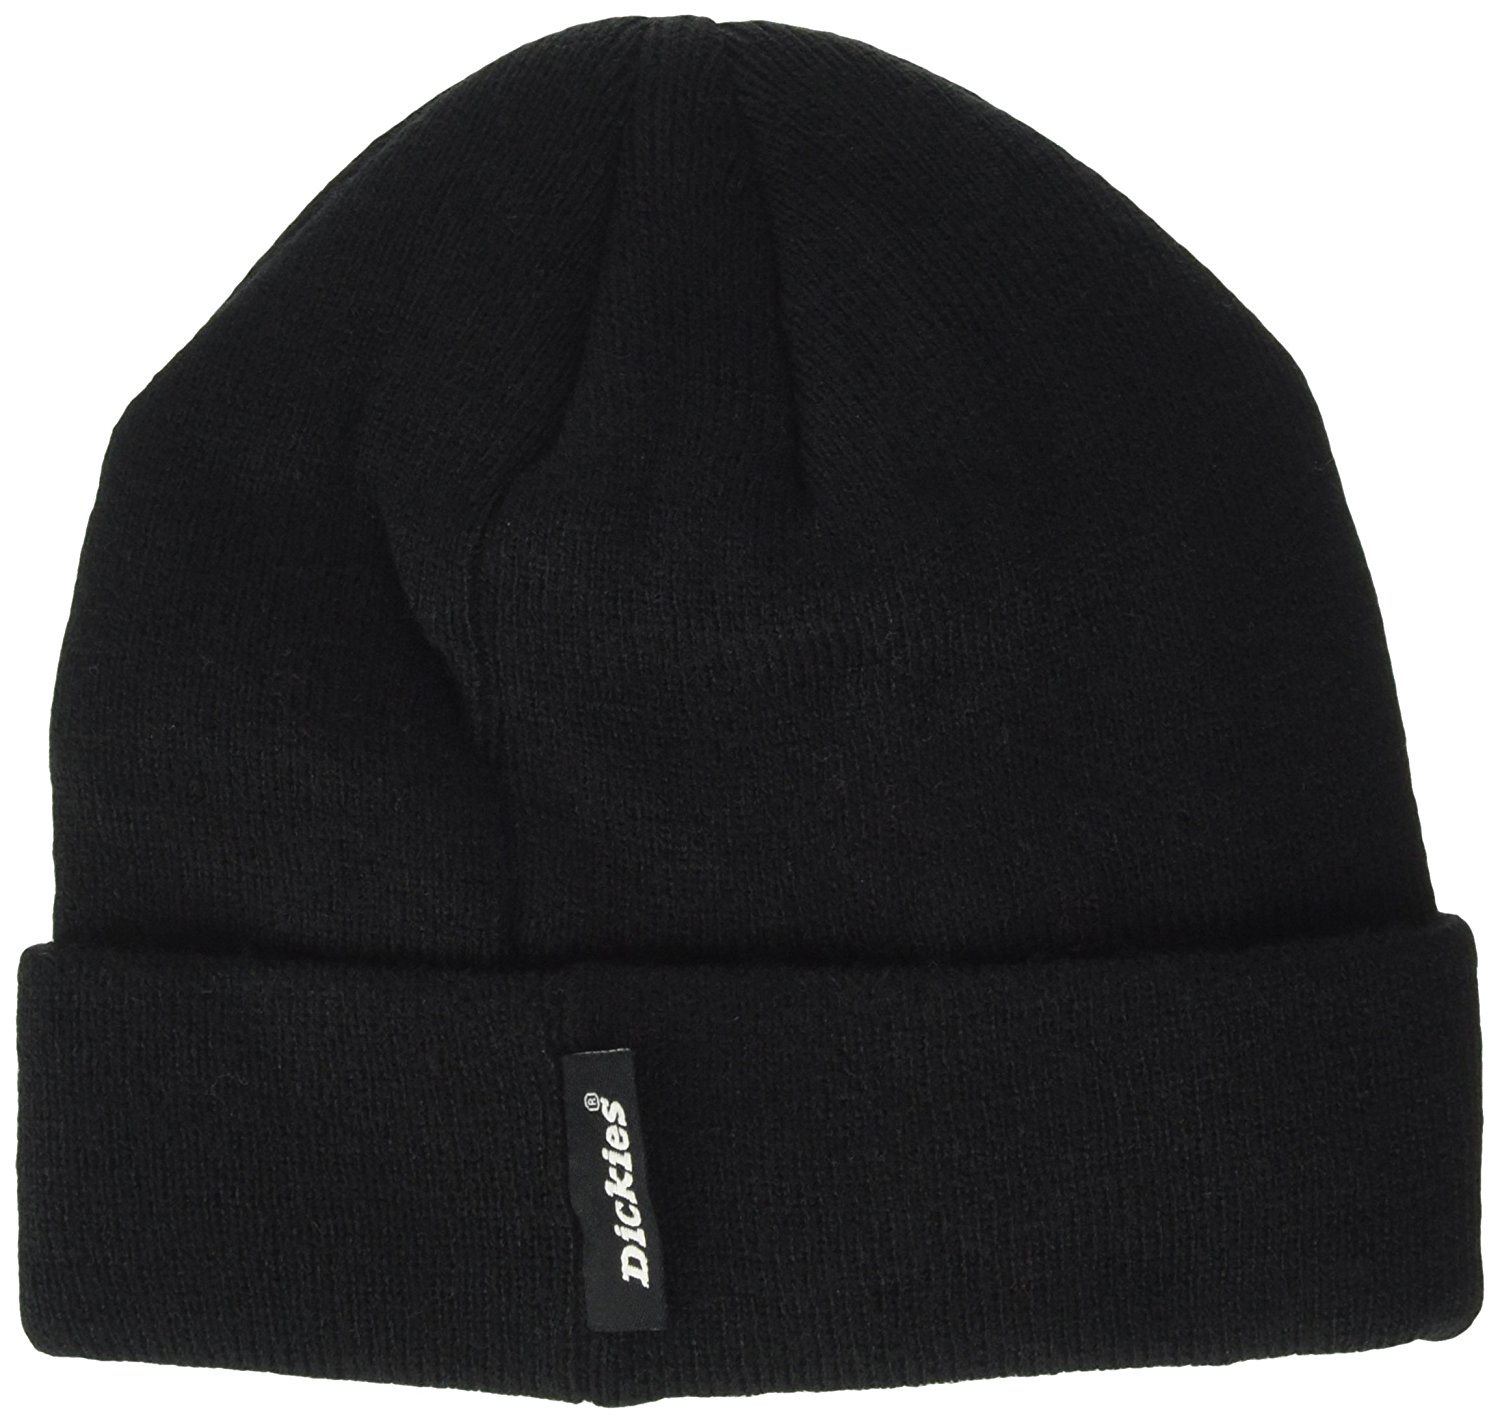 Get Quotations · Dickies Beanie Hat (Black) eb5cb3ee46fb